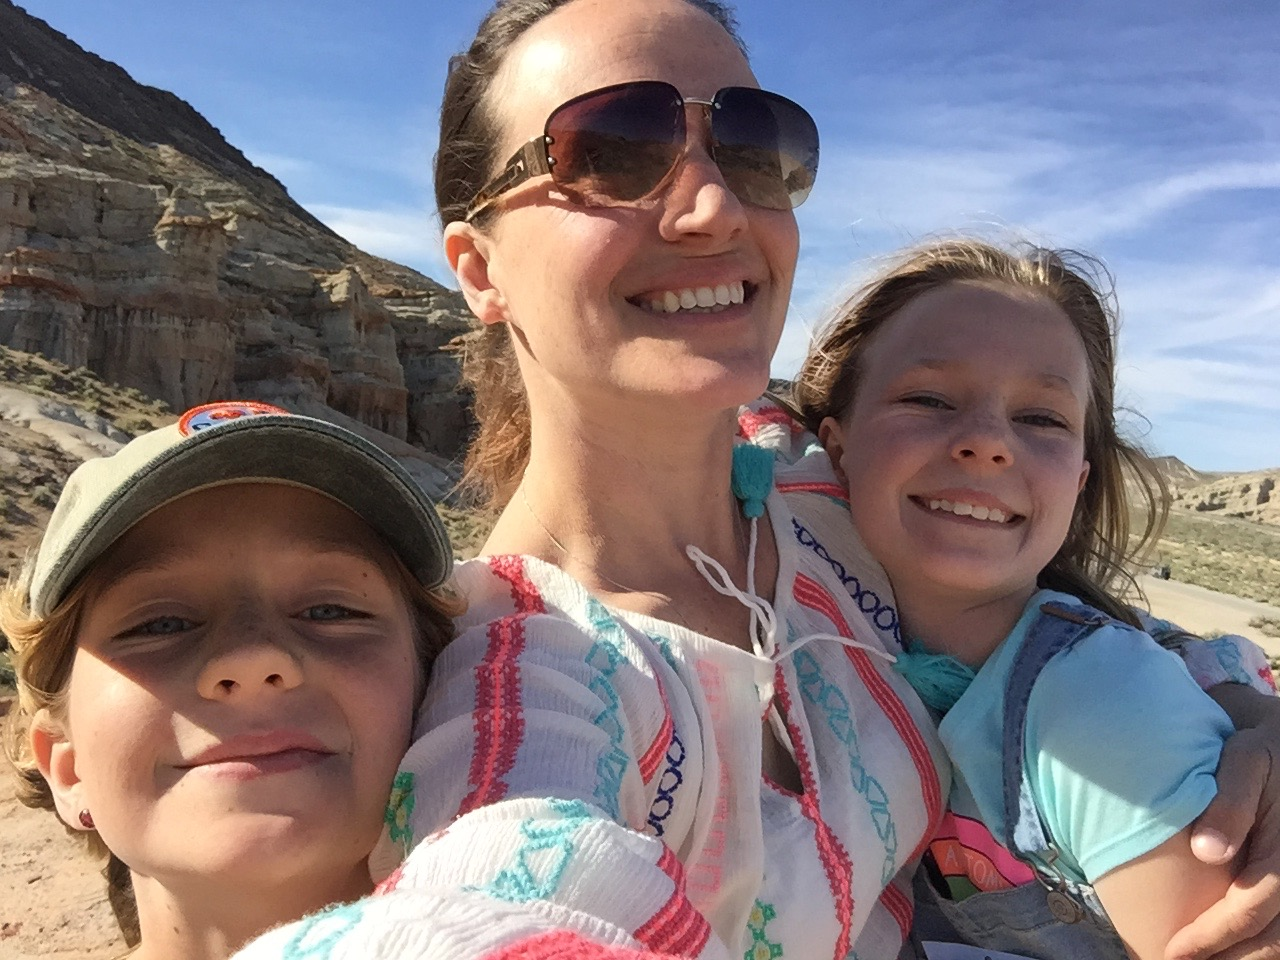 Abigail & her daughters on a hike in Red Rock Canyon